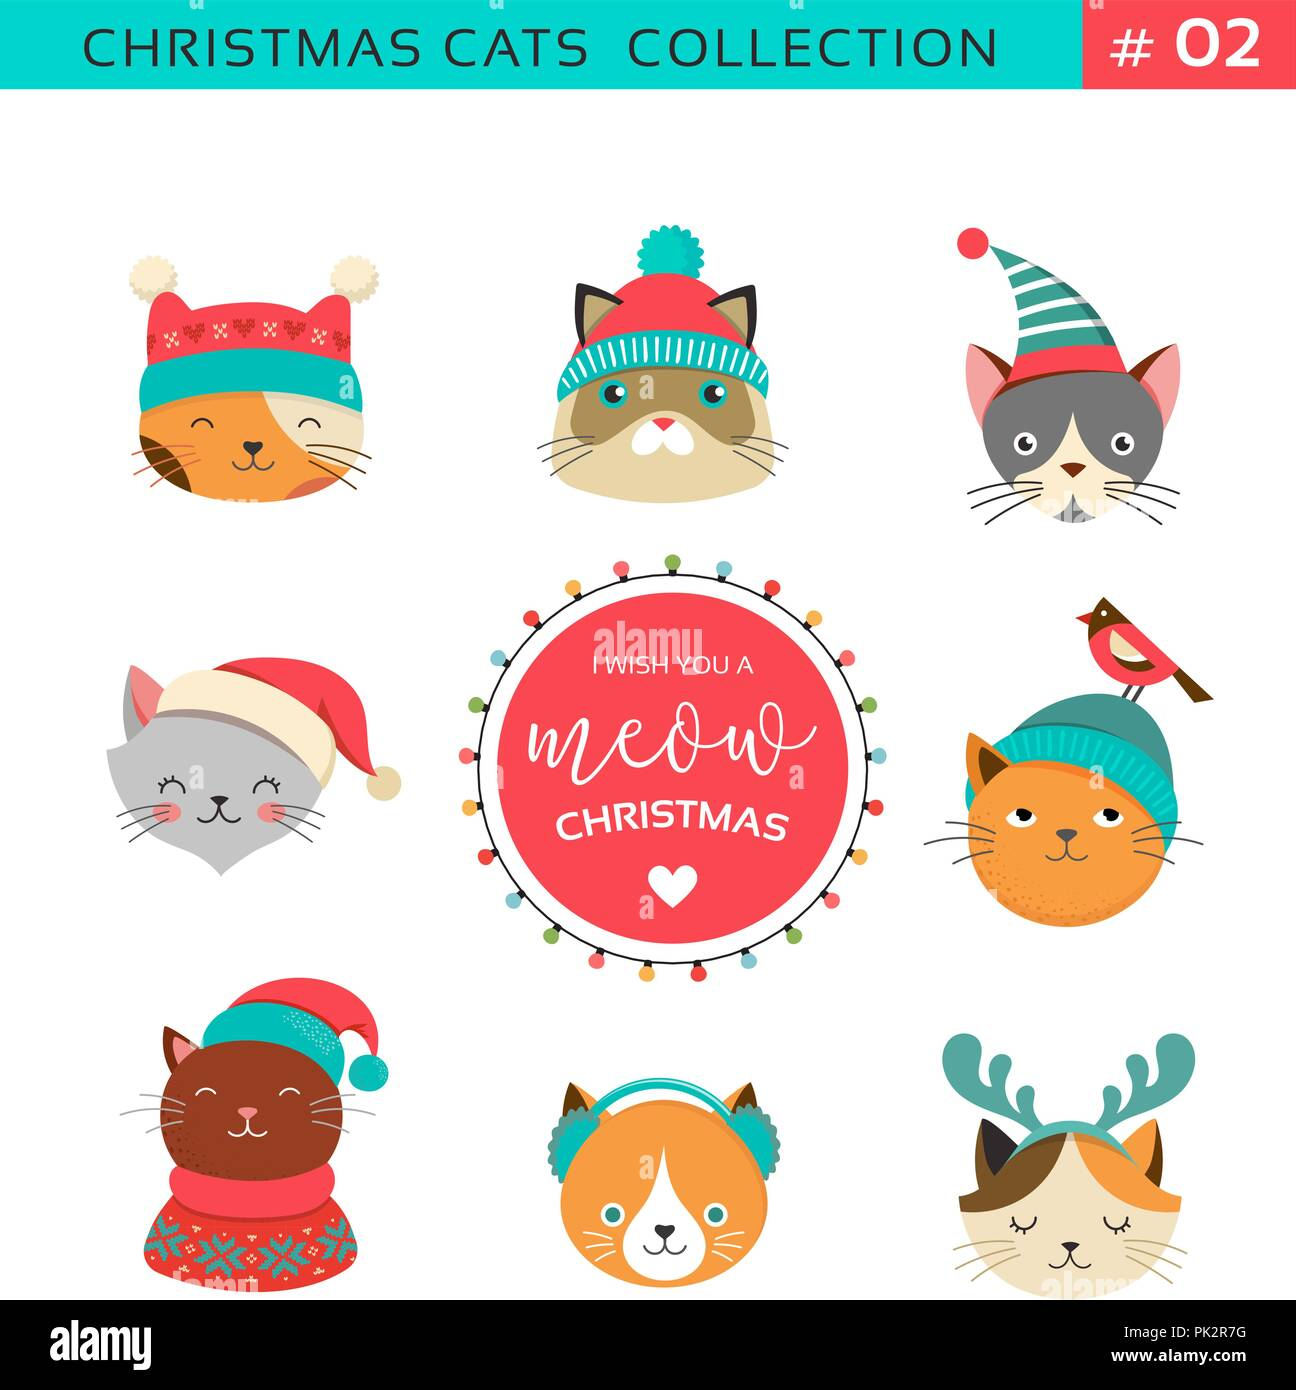 Merry Christmas Greetings With Cute Cats Characters Vector